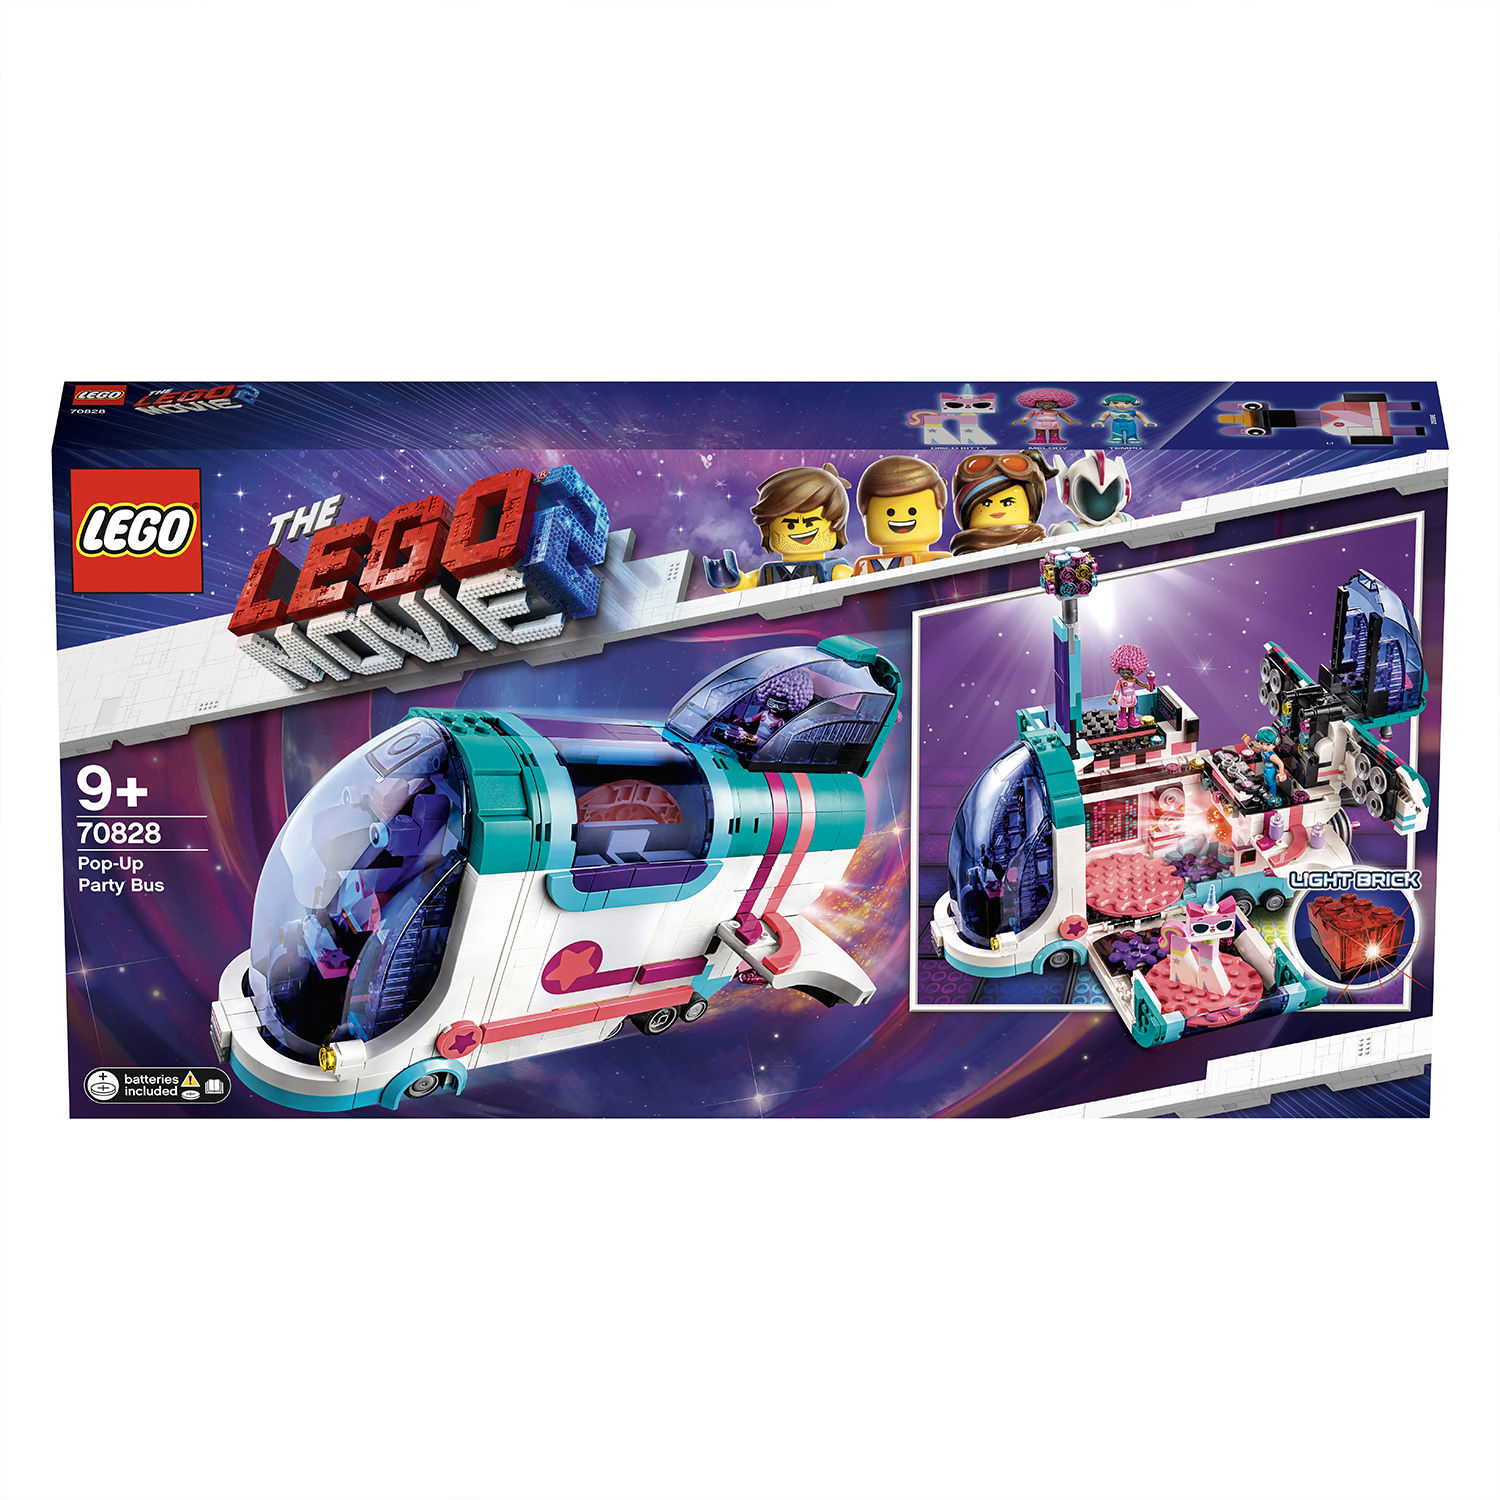 Lego Movie 2 70828 Il party bus Pop-Up